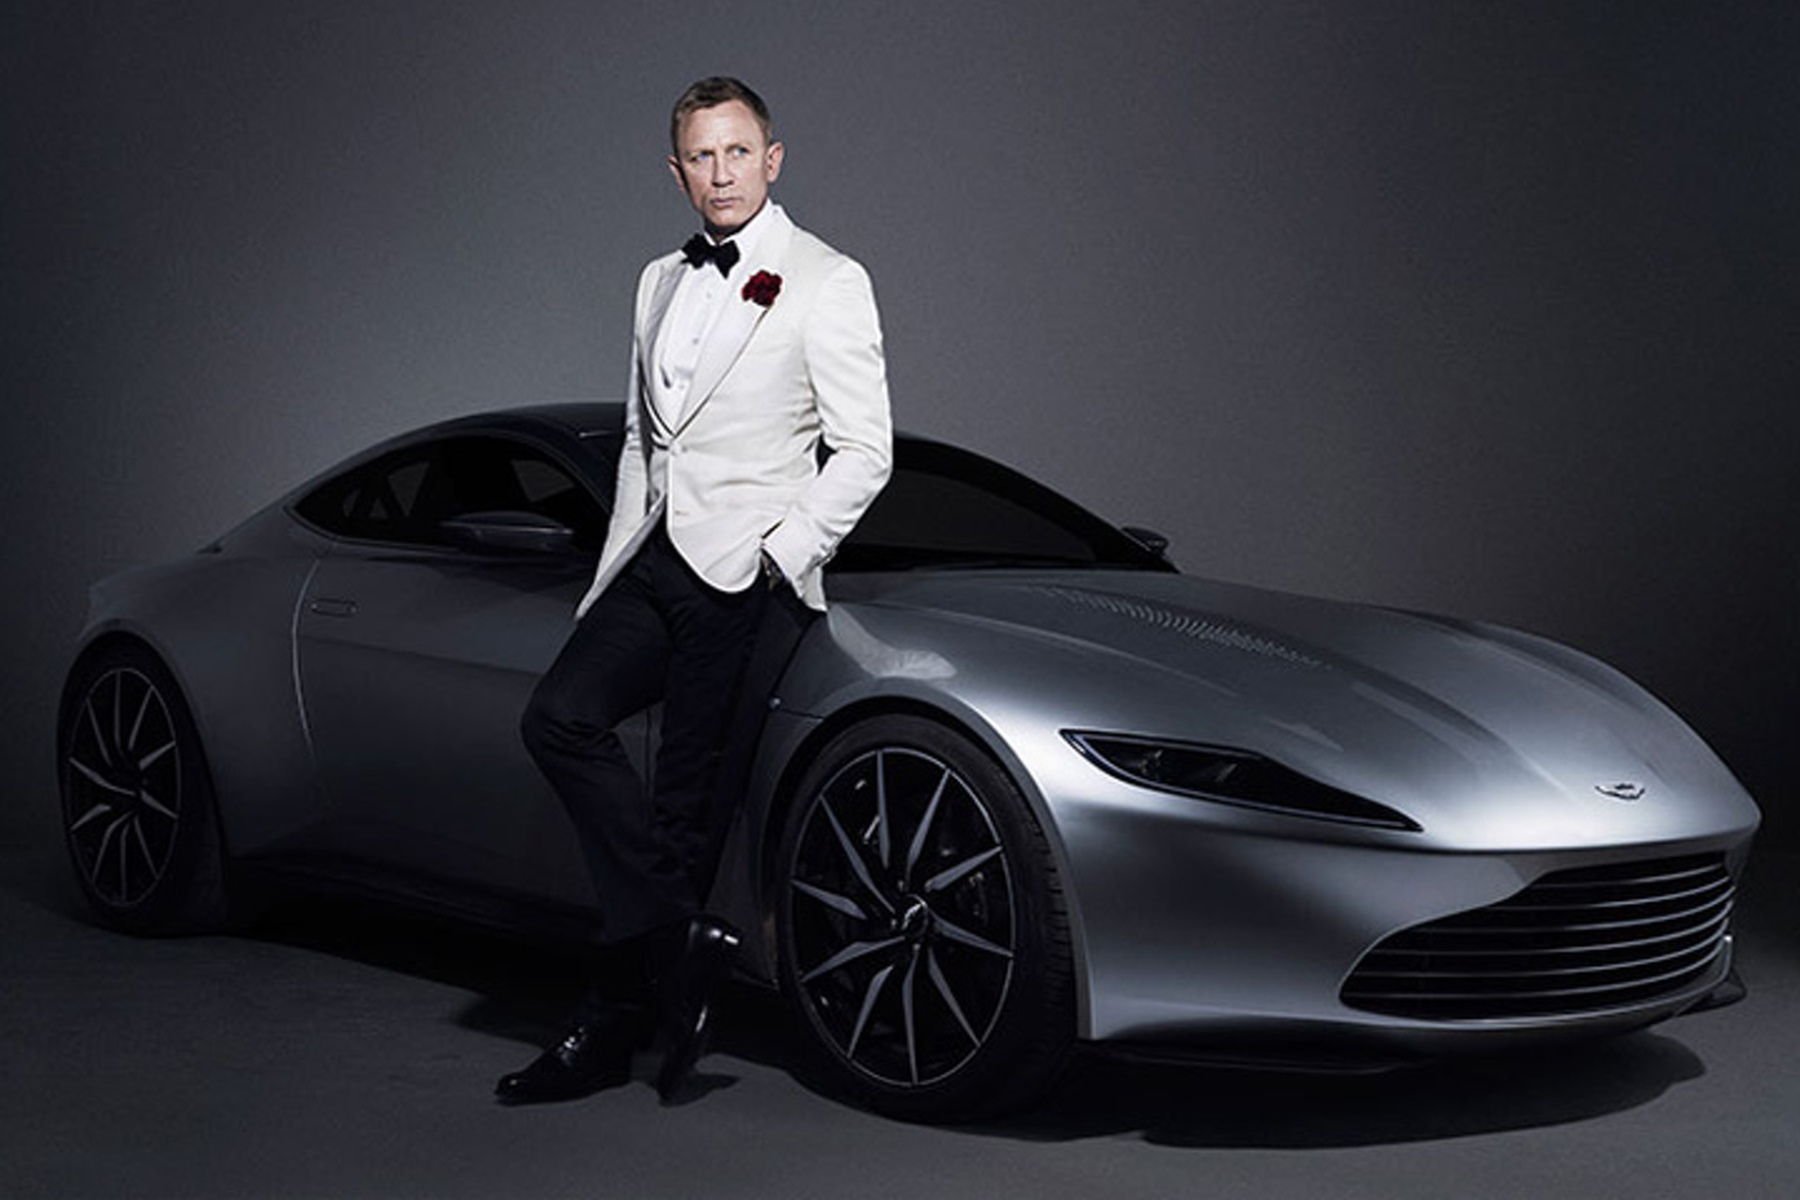 Aston Martin DB10 with Daniel Craig from Spectre